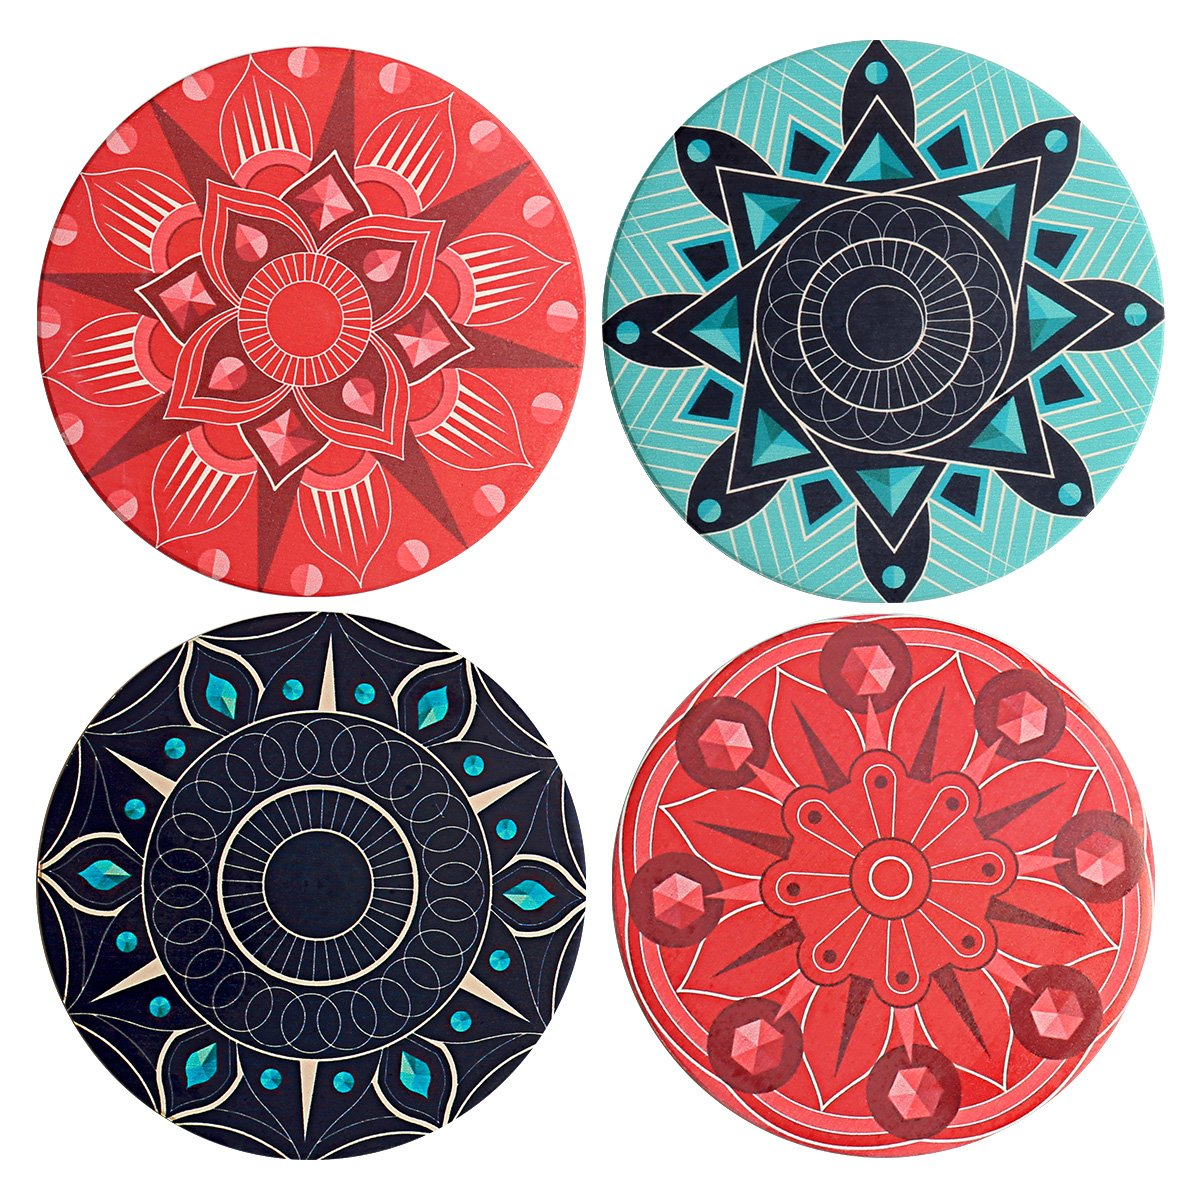 LogHog Absorbent Ceramic Stone Coasters for Drinks, Pack of 4 Stone Coaster Set Cork Coaster for Mugs and Cups(Bohemia)